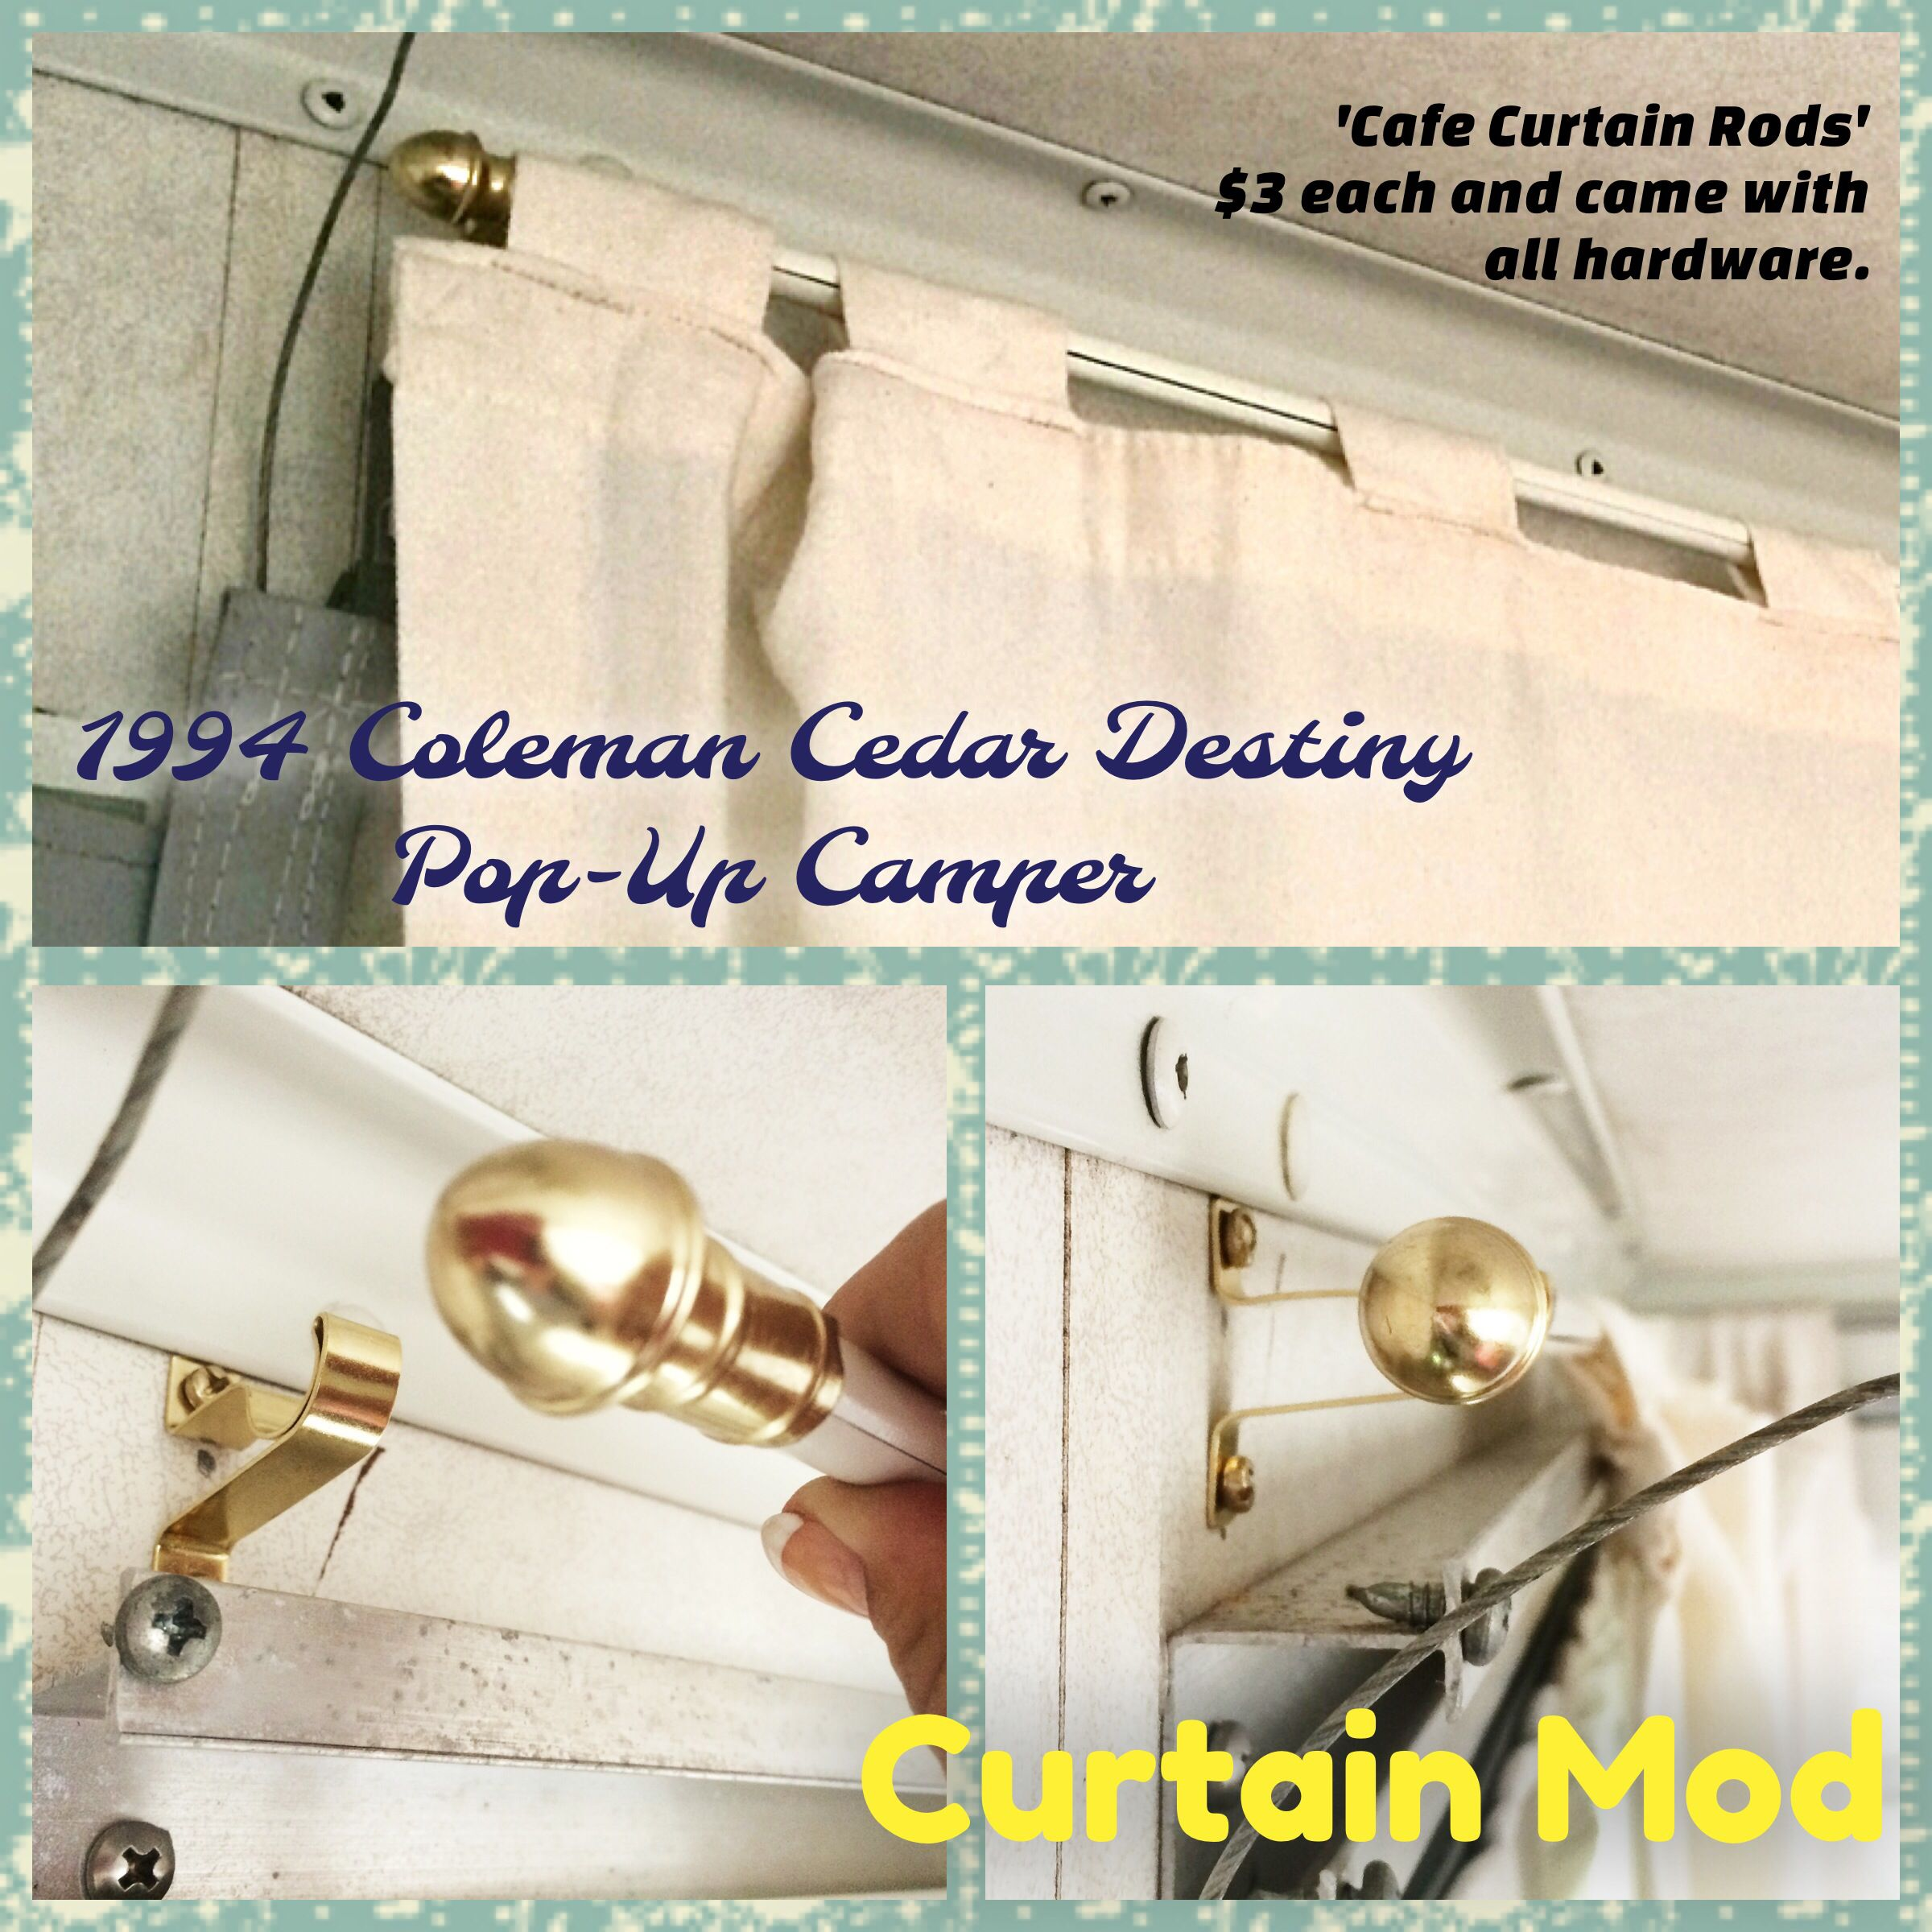 Coleman Cedar Destiny Camper Pop Up Curtain Mod Didn T Want To